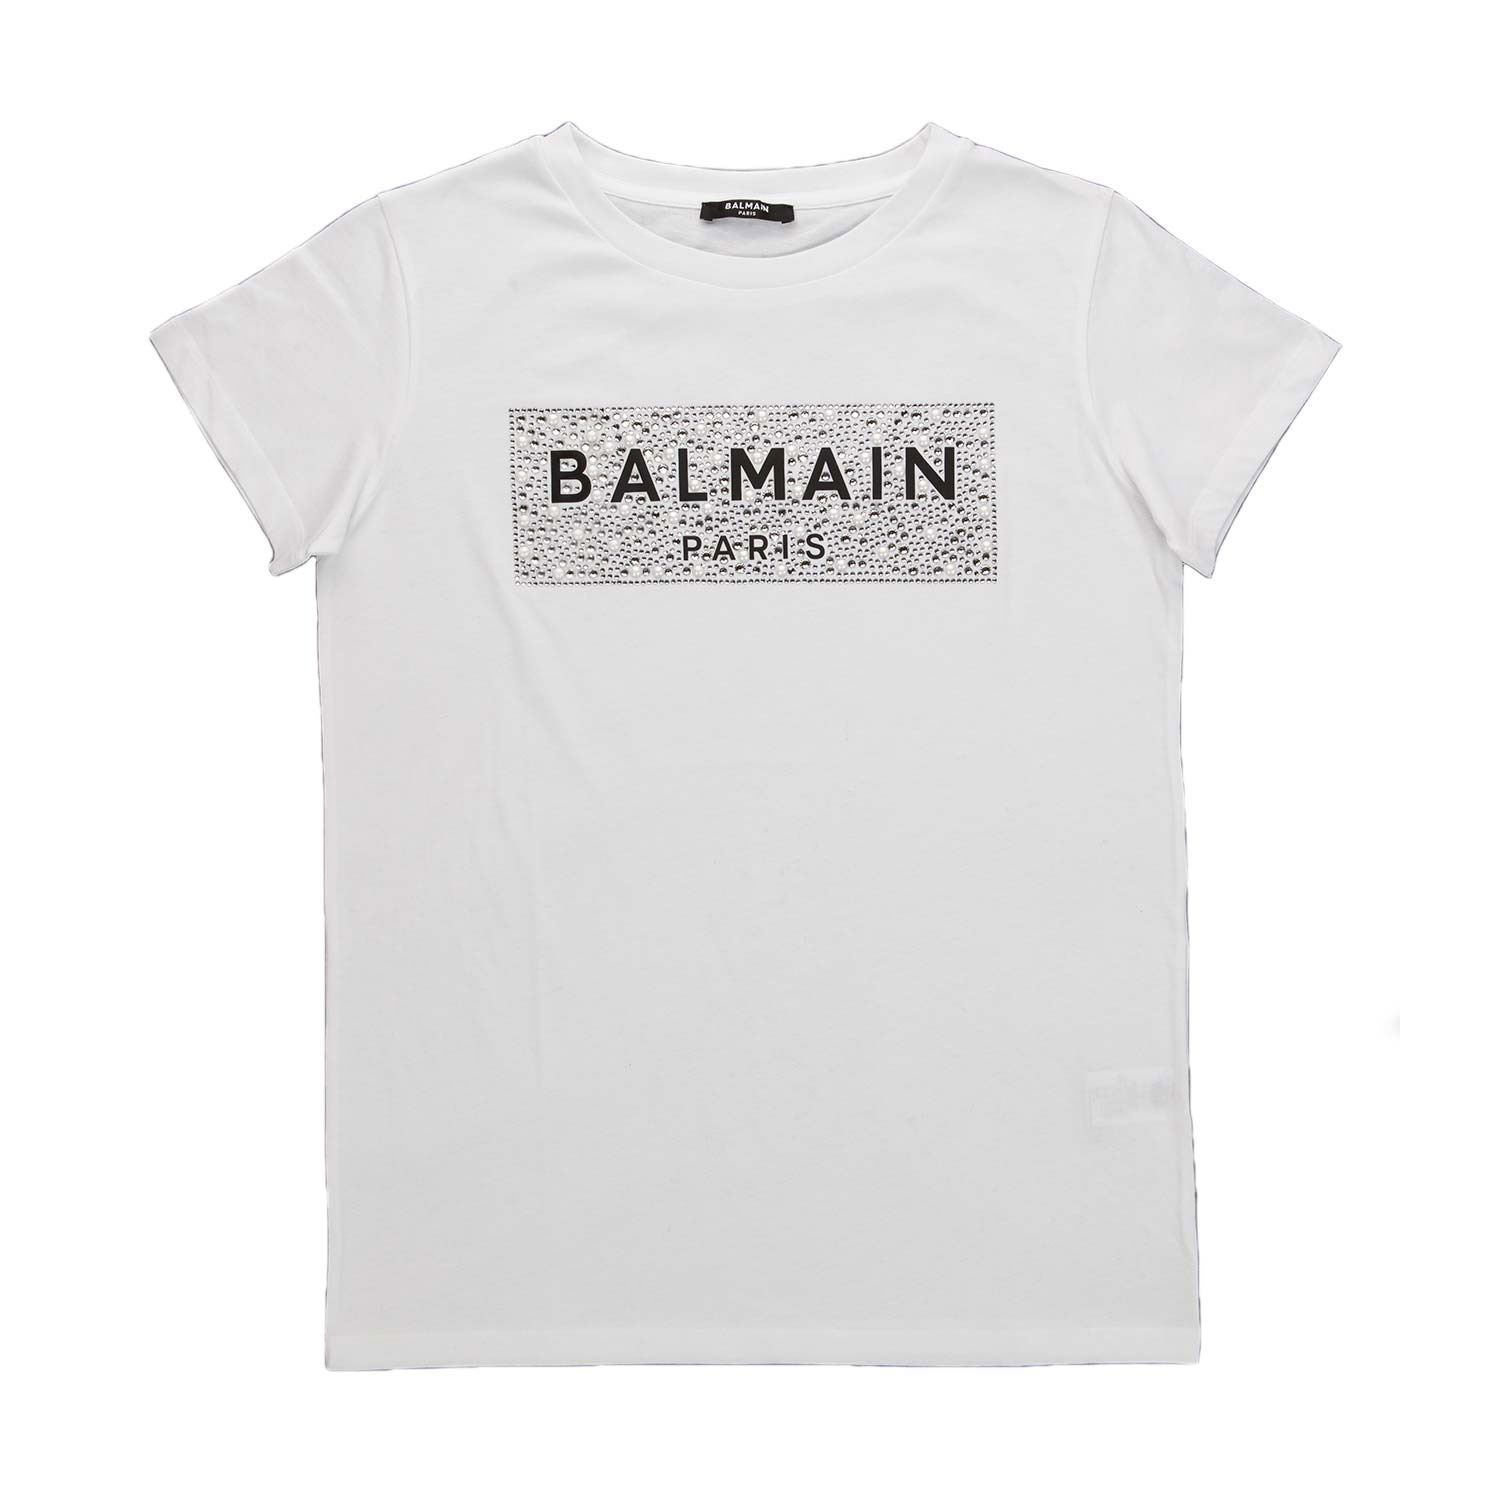 tshirt bianca Balmain Life&People Magazine LifeandPeople.it